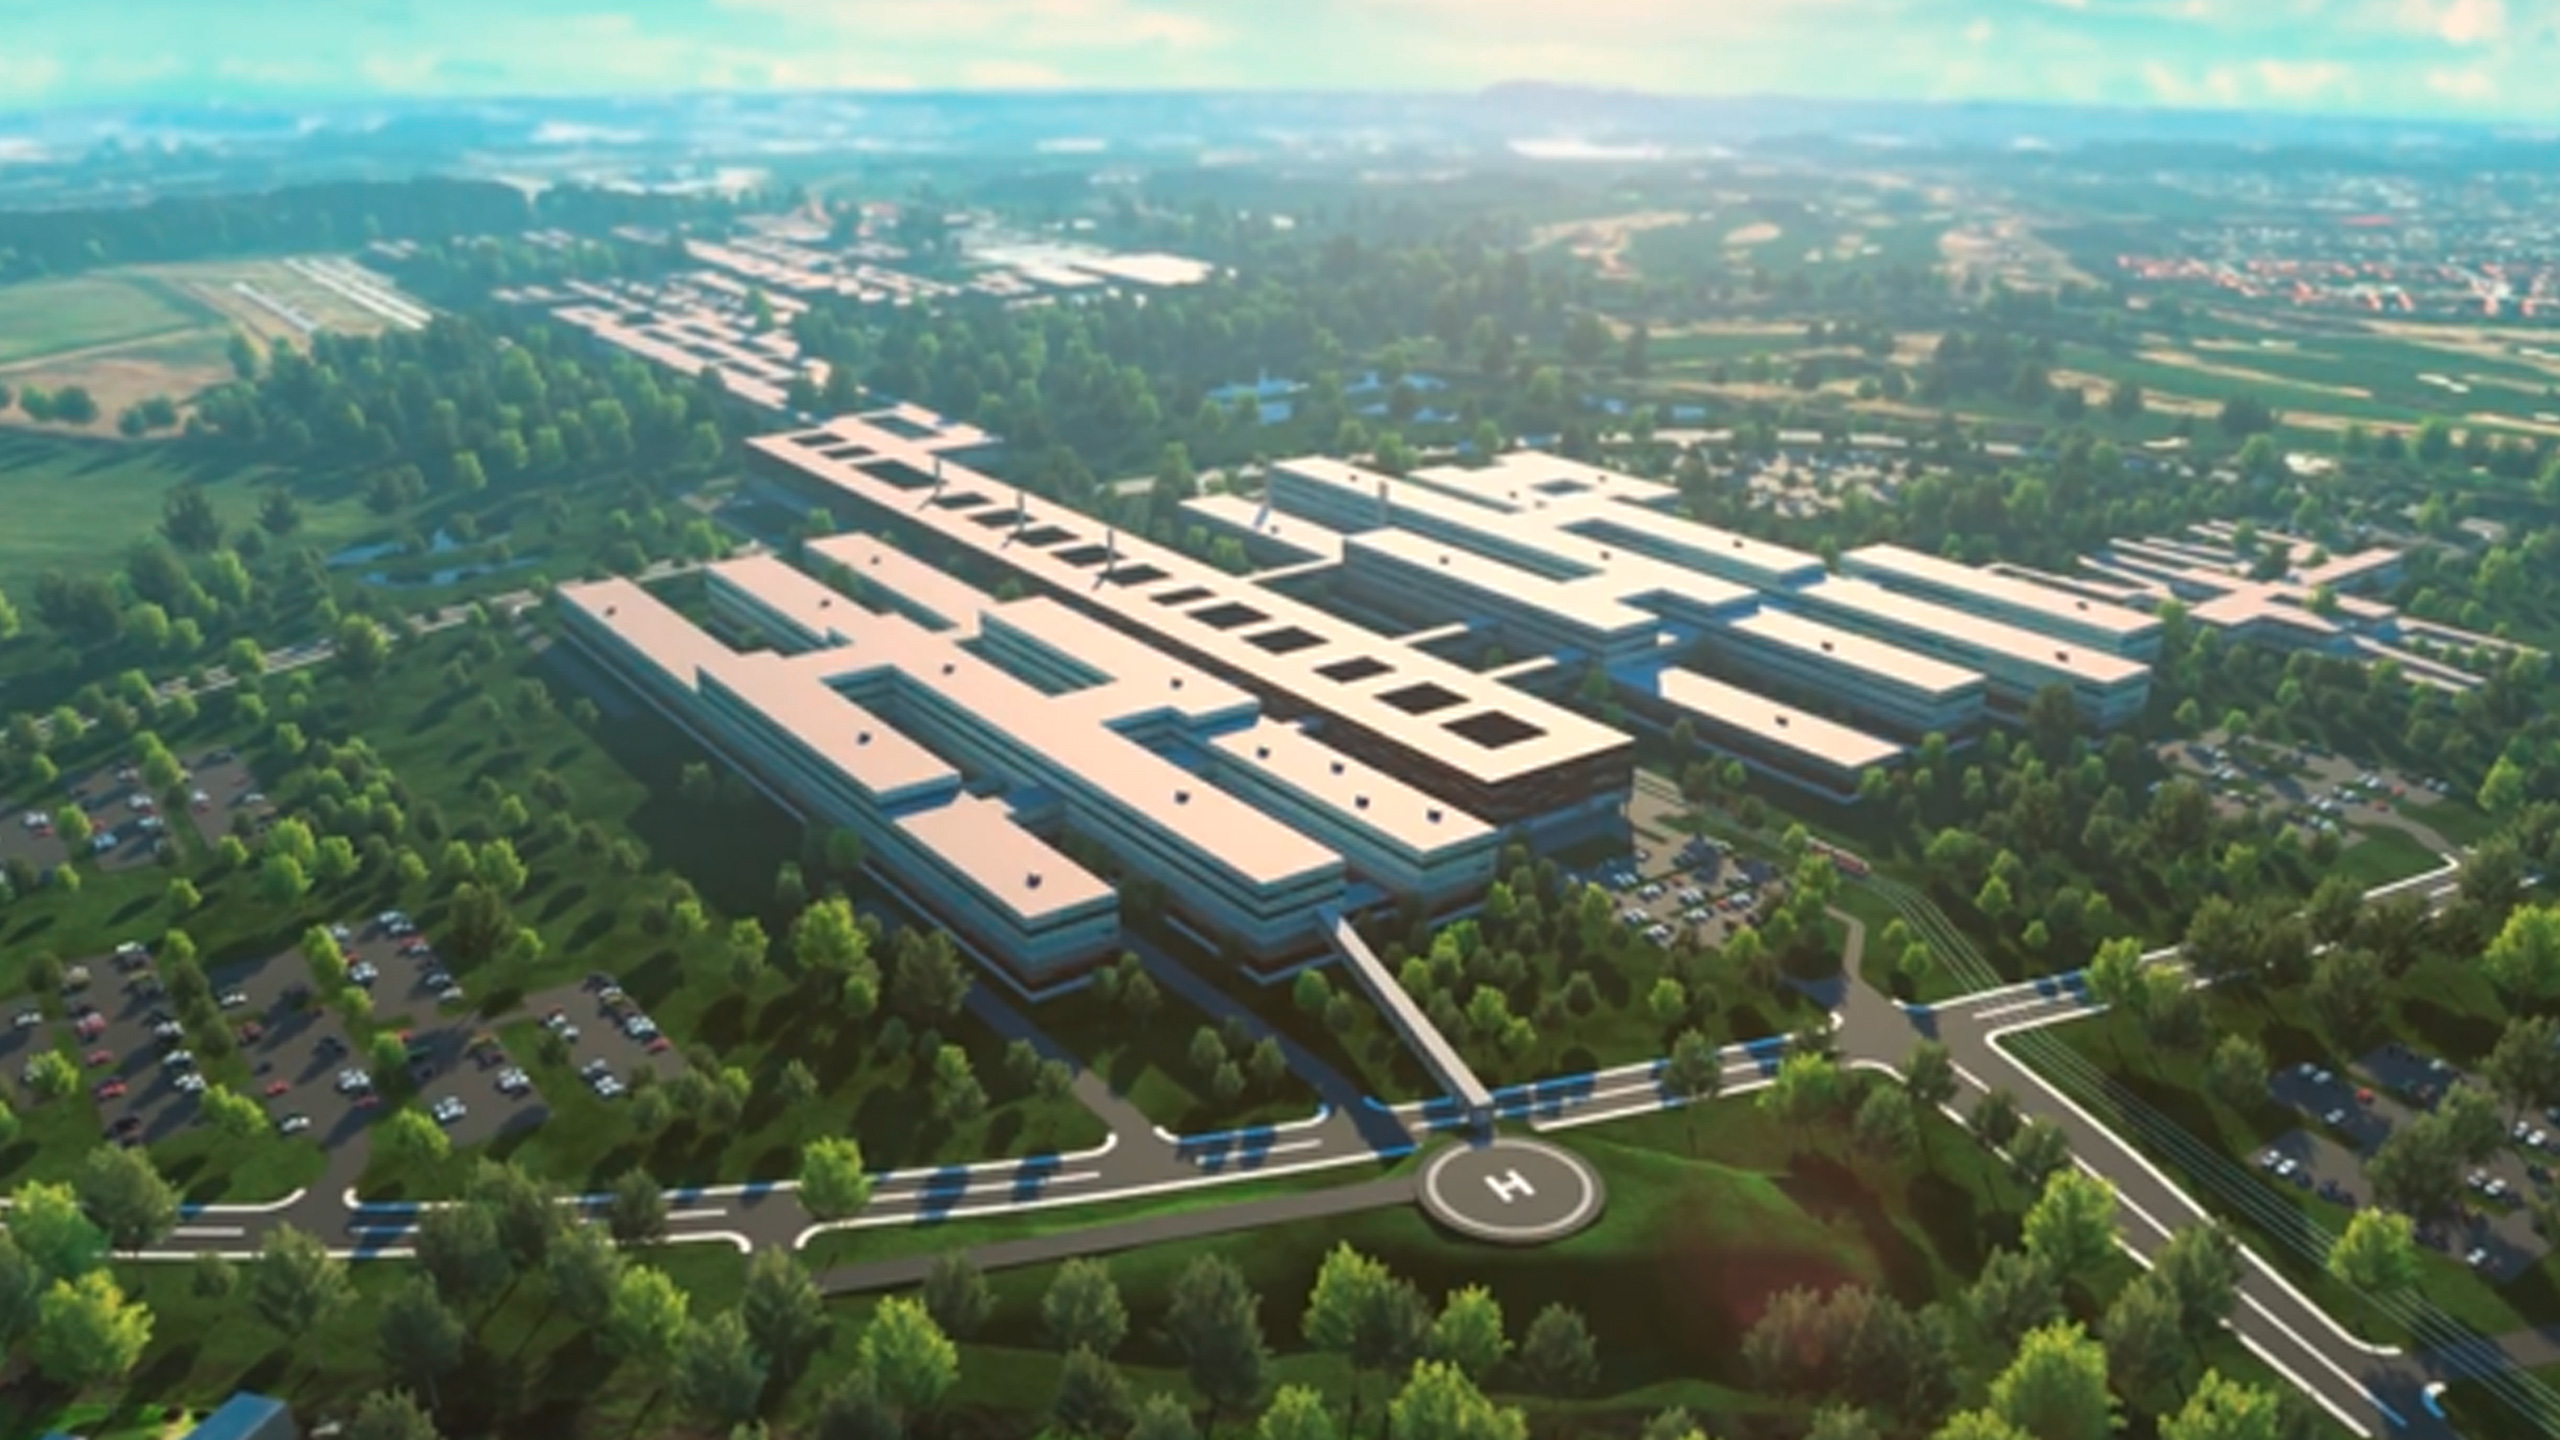 Animated overview of the new university hospital in Odense, Denmark